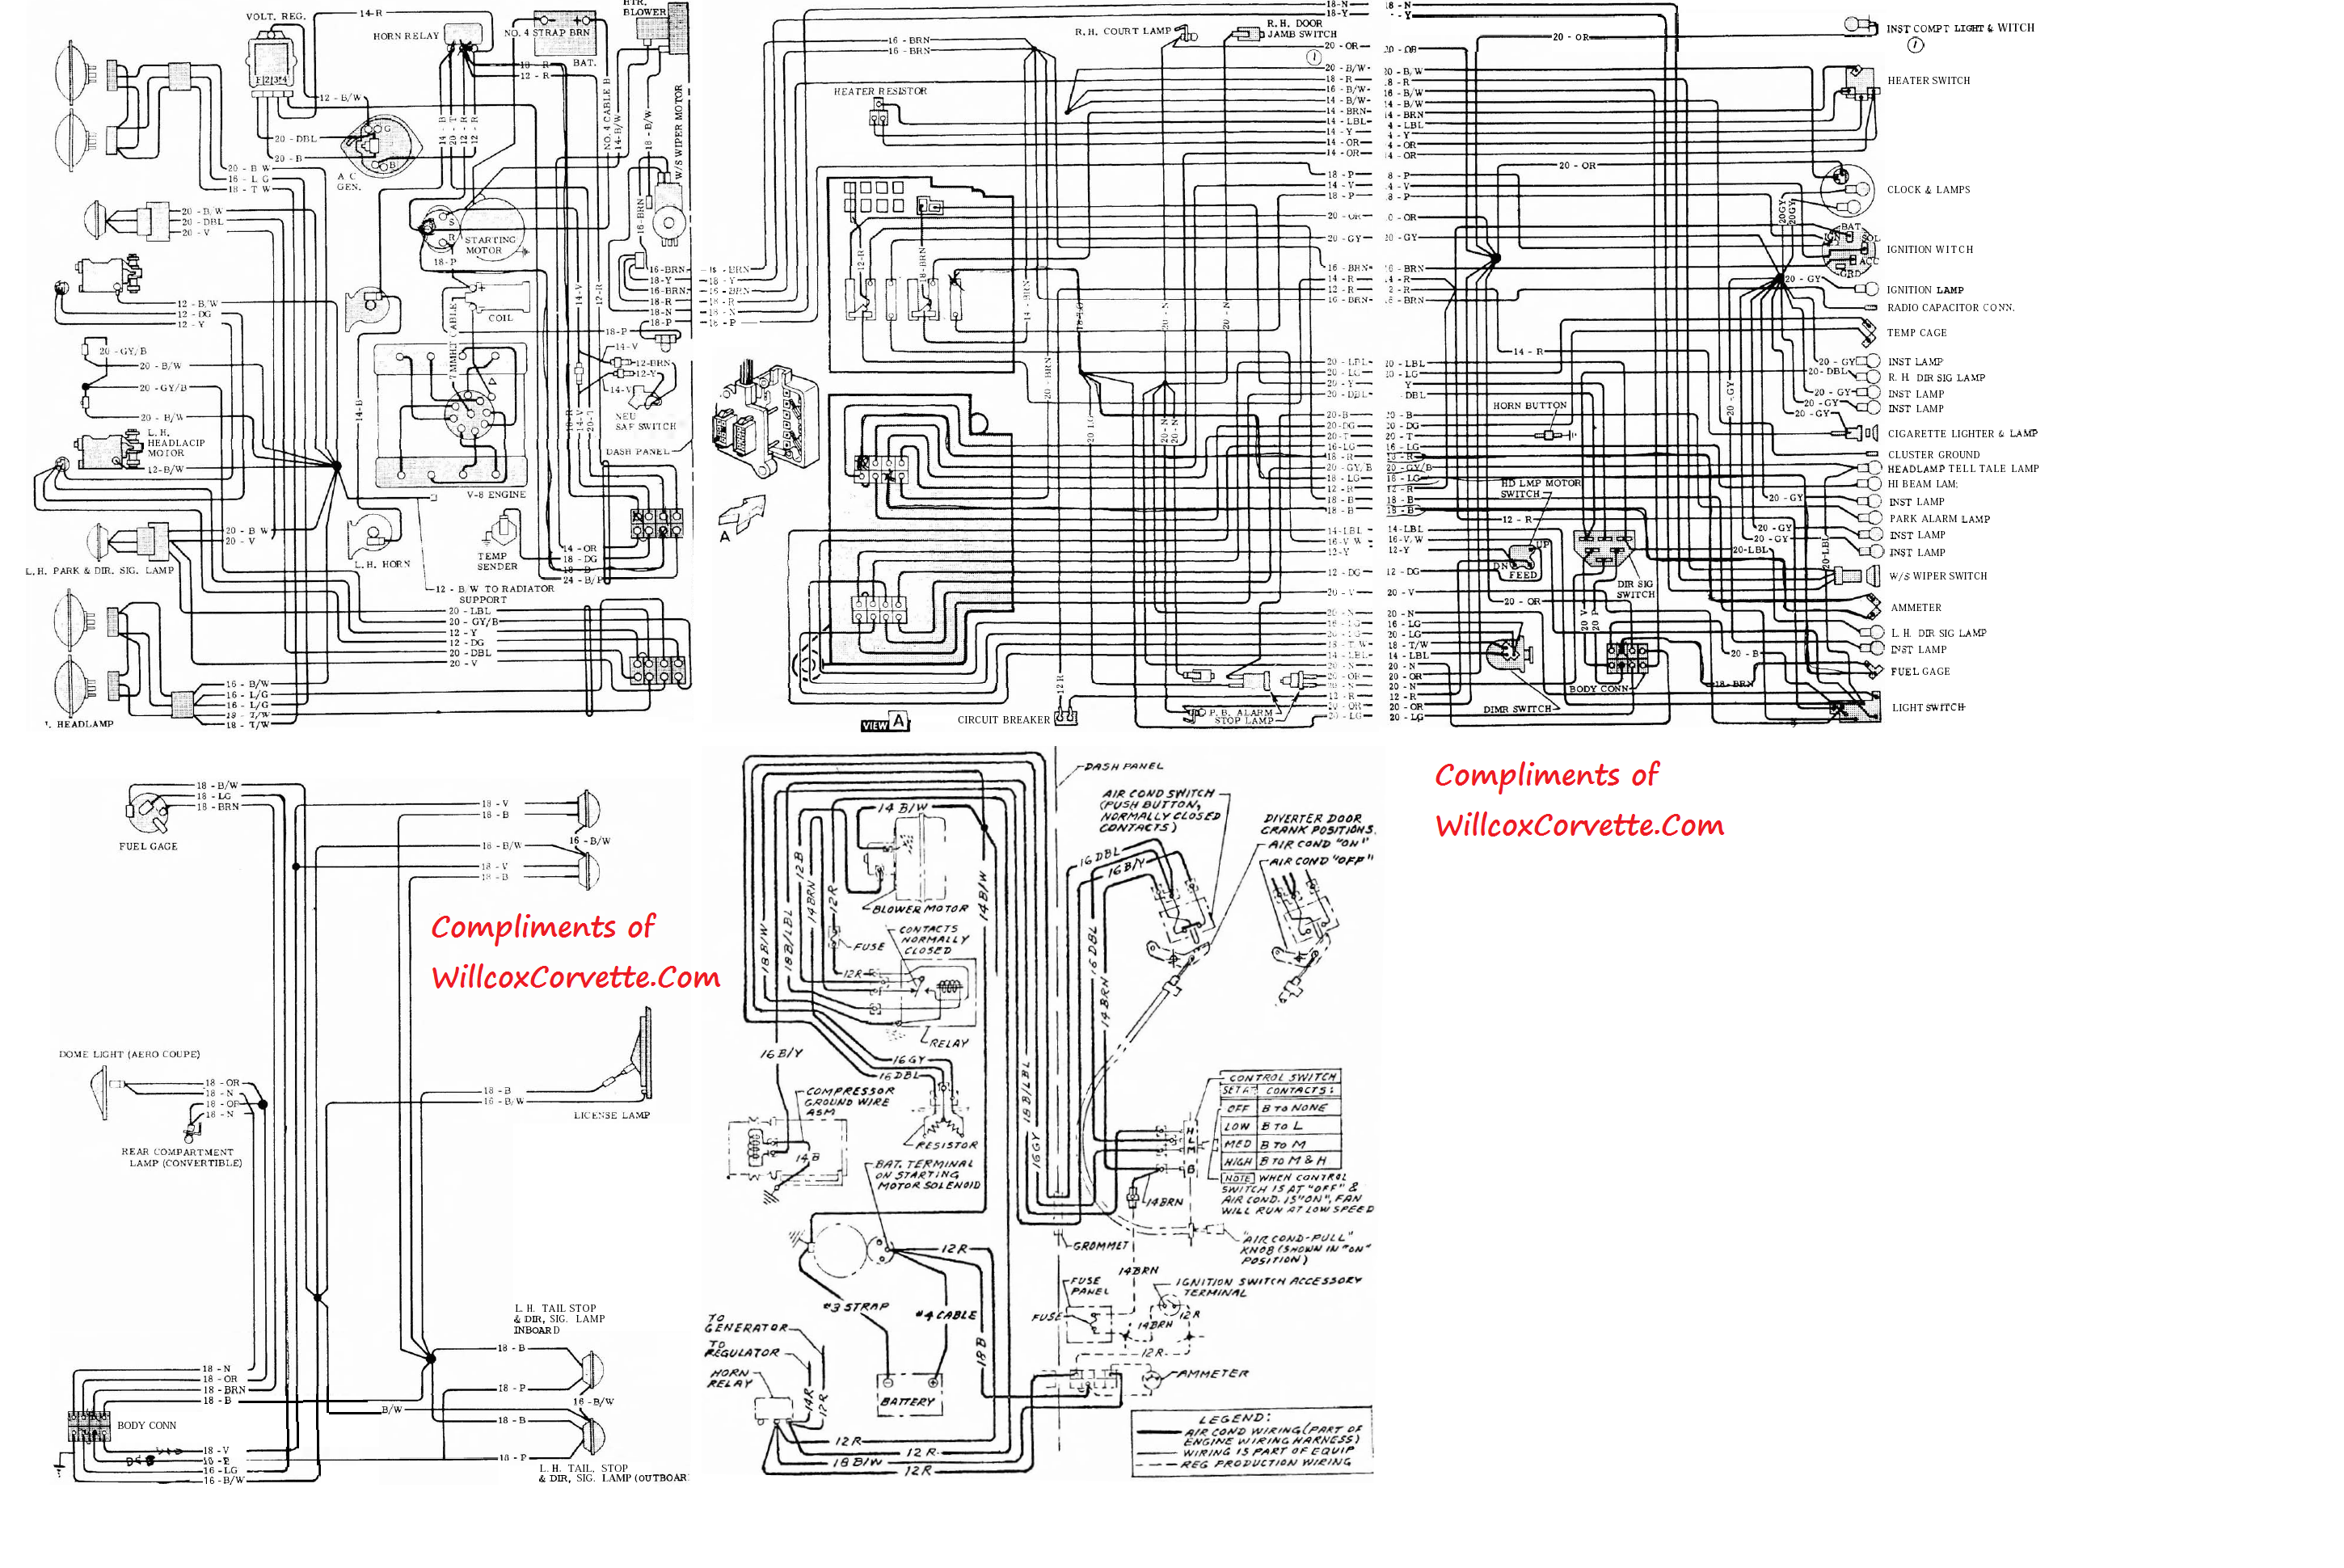 1963 Corvette Tracer Wiring Diagram Tracer Schematic 1963 corvette tracer wiring diagram tracer schematic willcox willcox corvette wiring diagram at bayanpartner.co